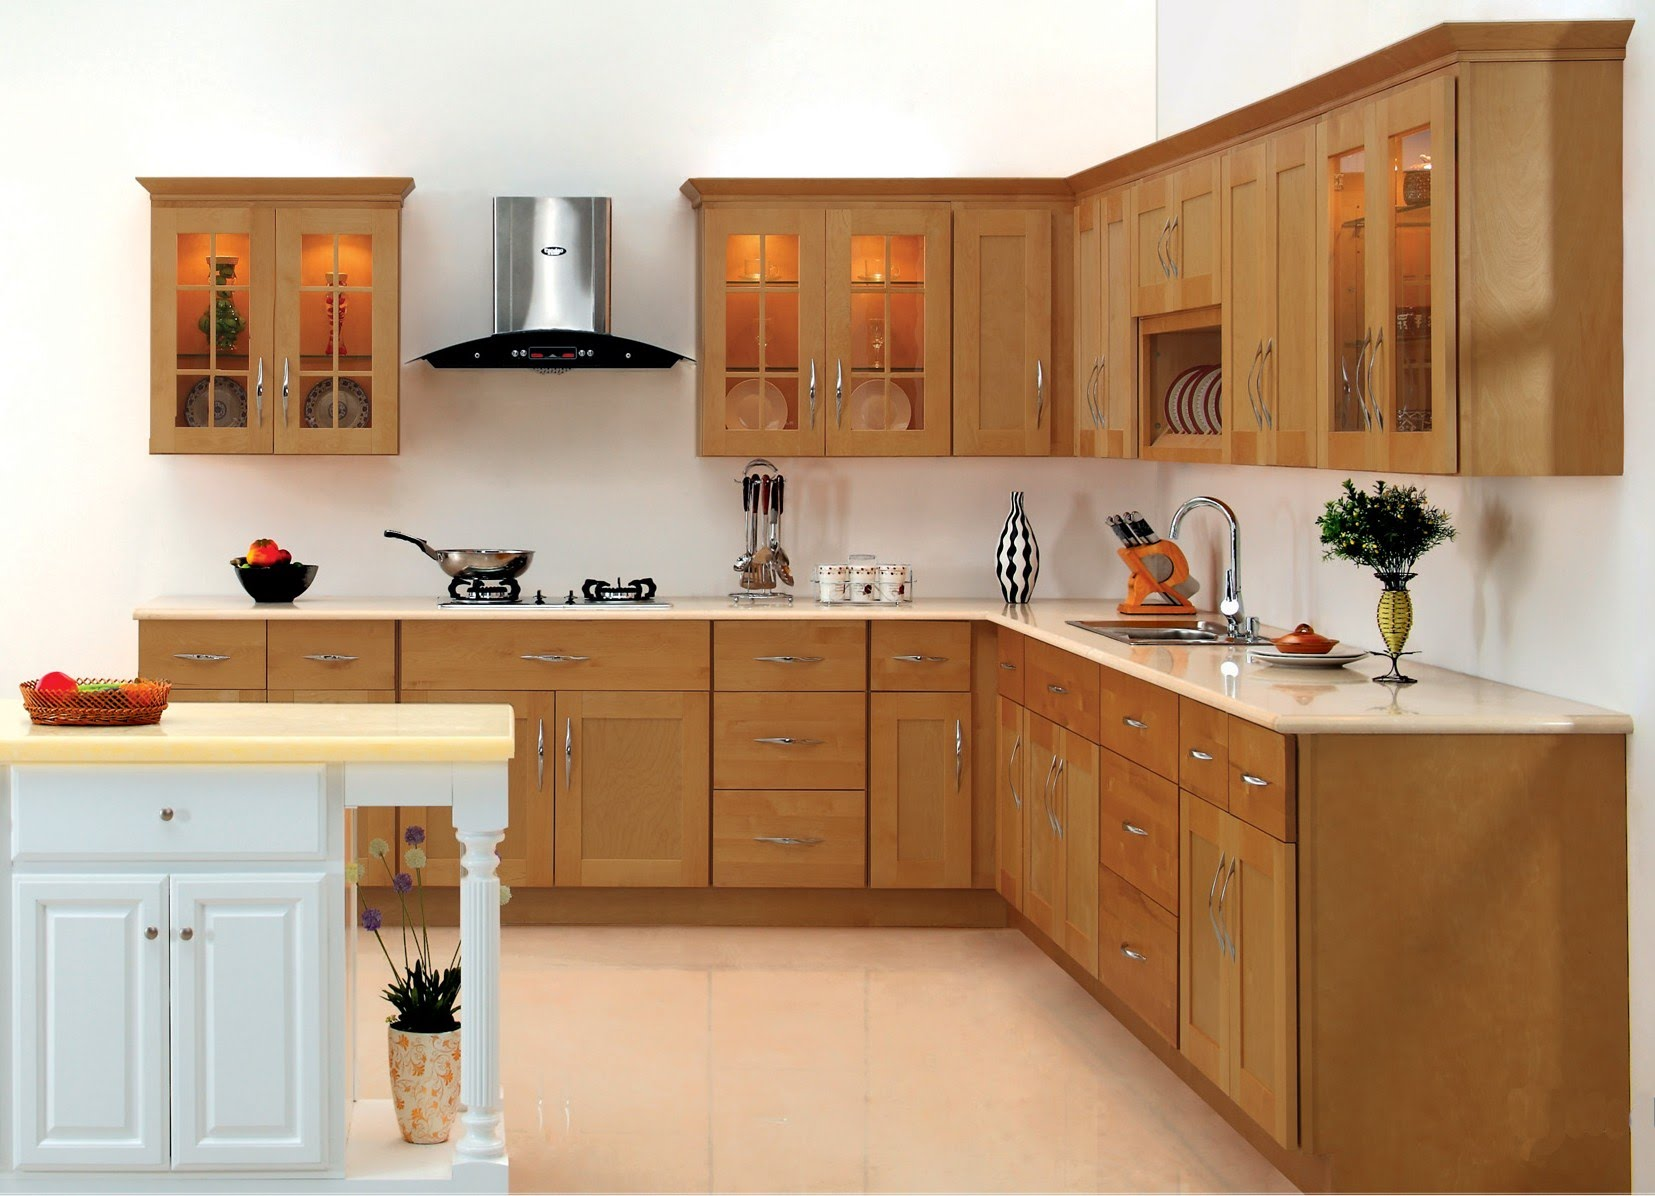 Why you need kitchen inspiration to come up with the right kitchen cabinets design